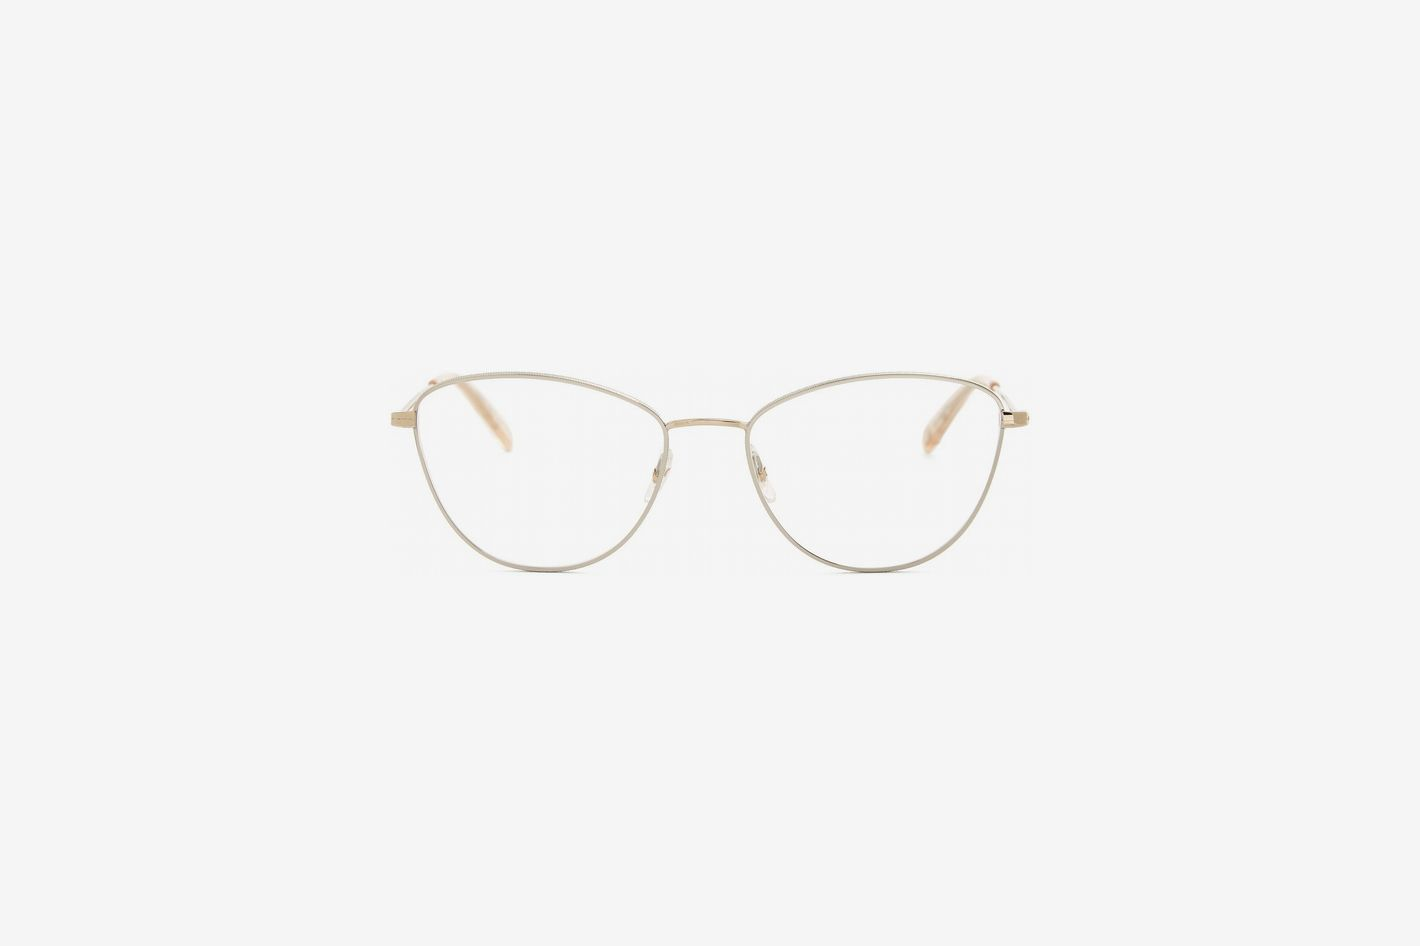 2bbc1a8392abb Garrett Leight Olive 51 cat-eye glasses at Matches Fashion